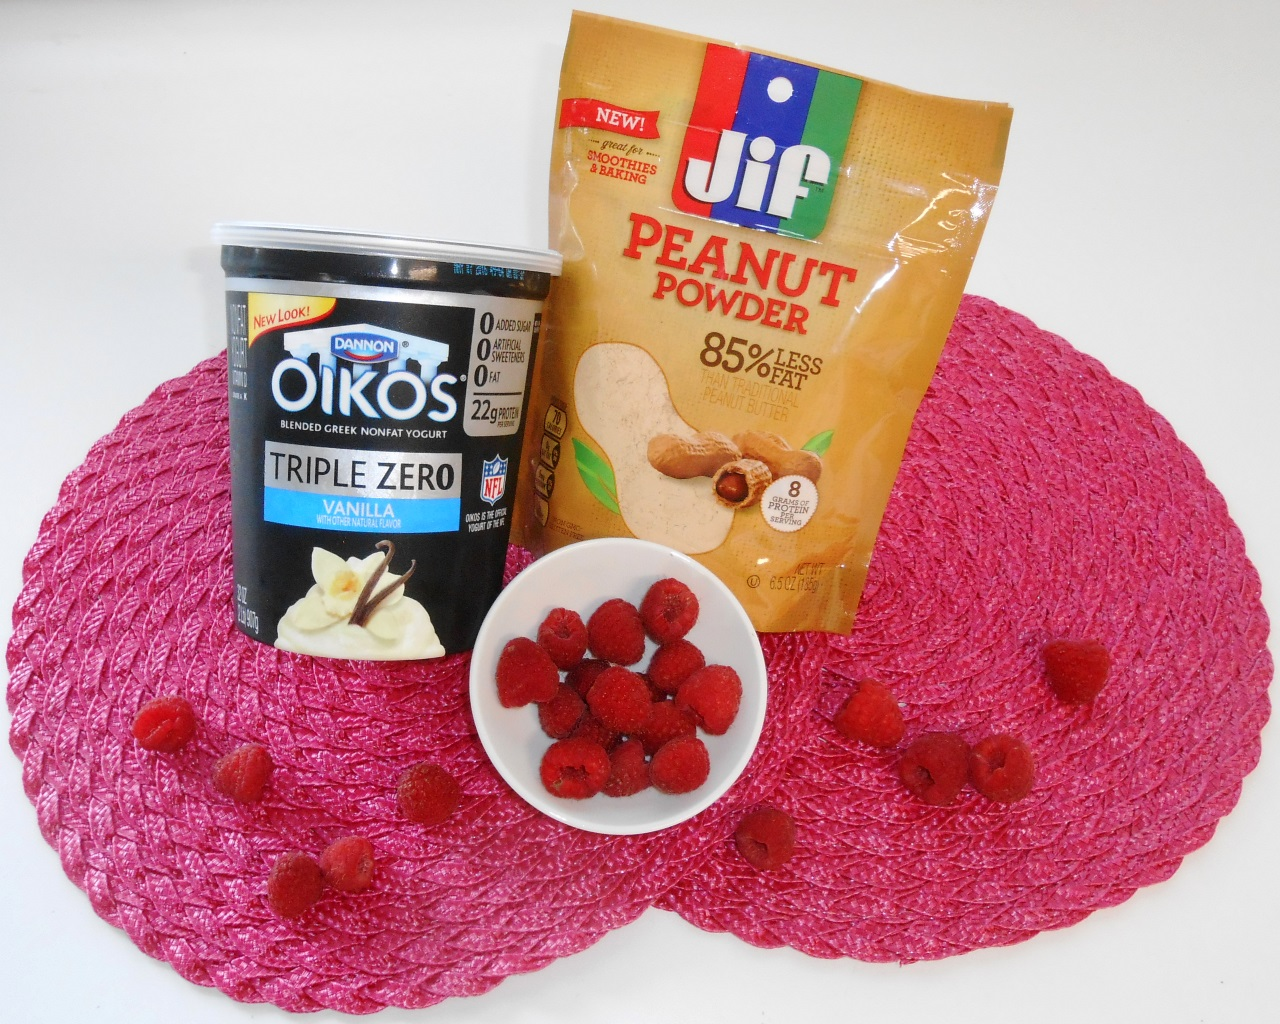 Oikos-Triple-Zero-Greek-Nonfat-Yogurt-Jif-Peanut-Powder-Raspberries-Ibotta